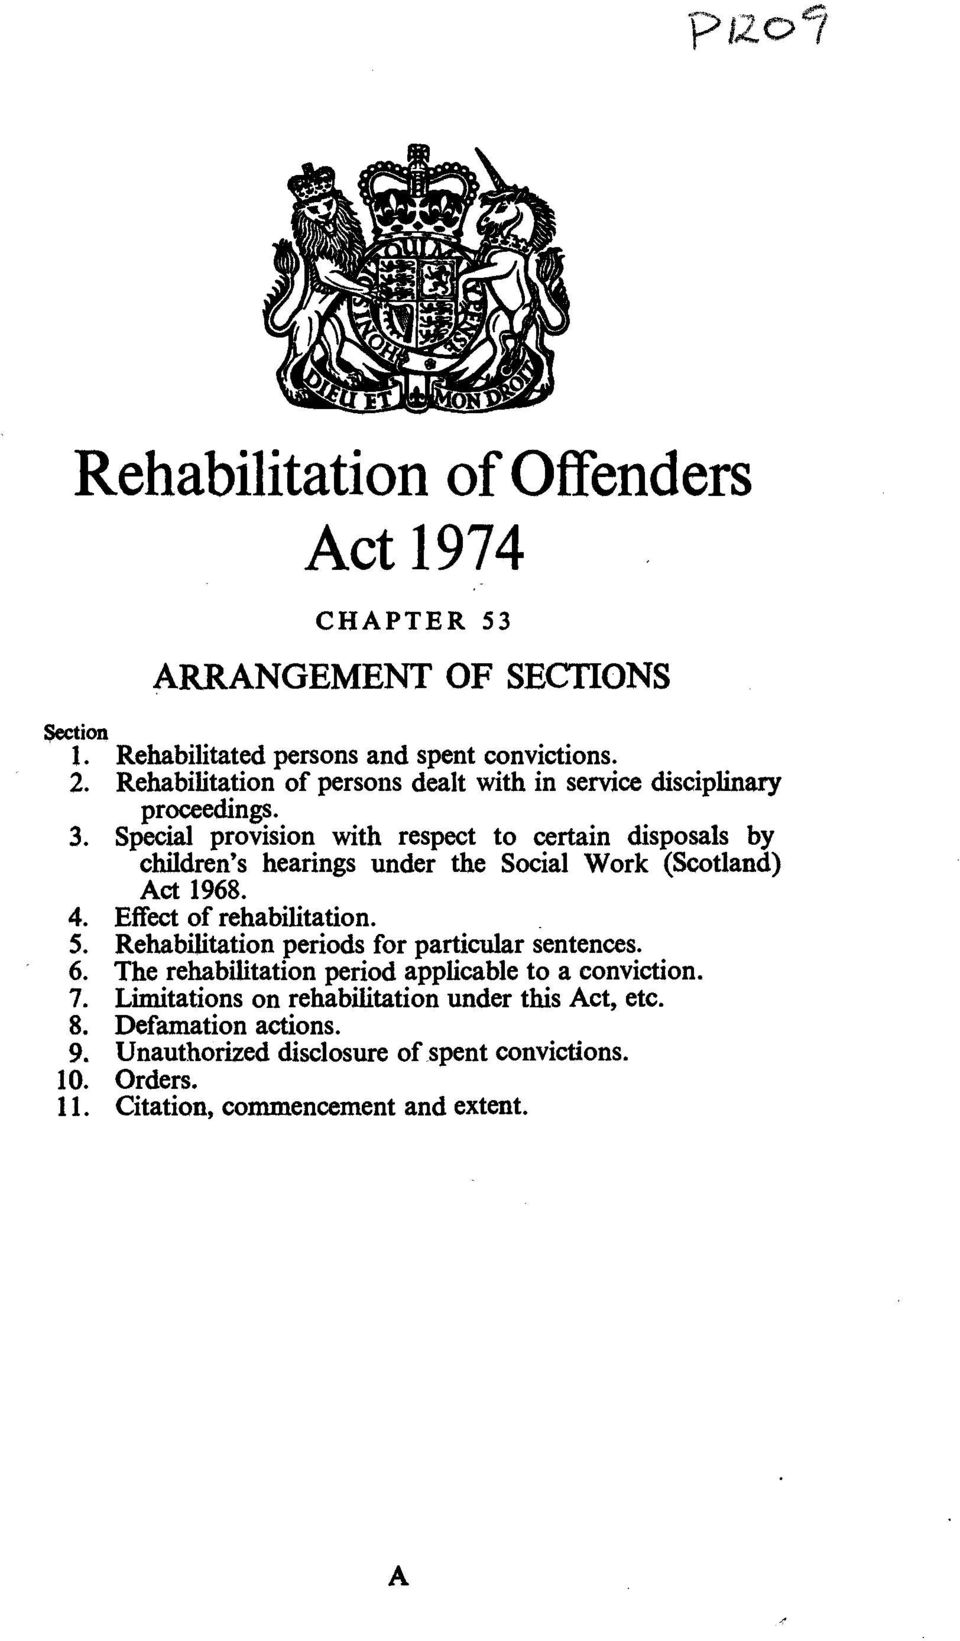 Special provision with respect to certain disposals by children's hearings under the Social Work (Scotland) Act 1968. 4. Effect of rehabilitation. 5.